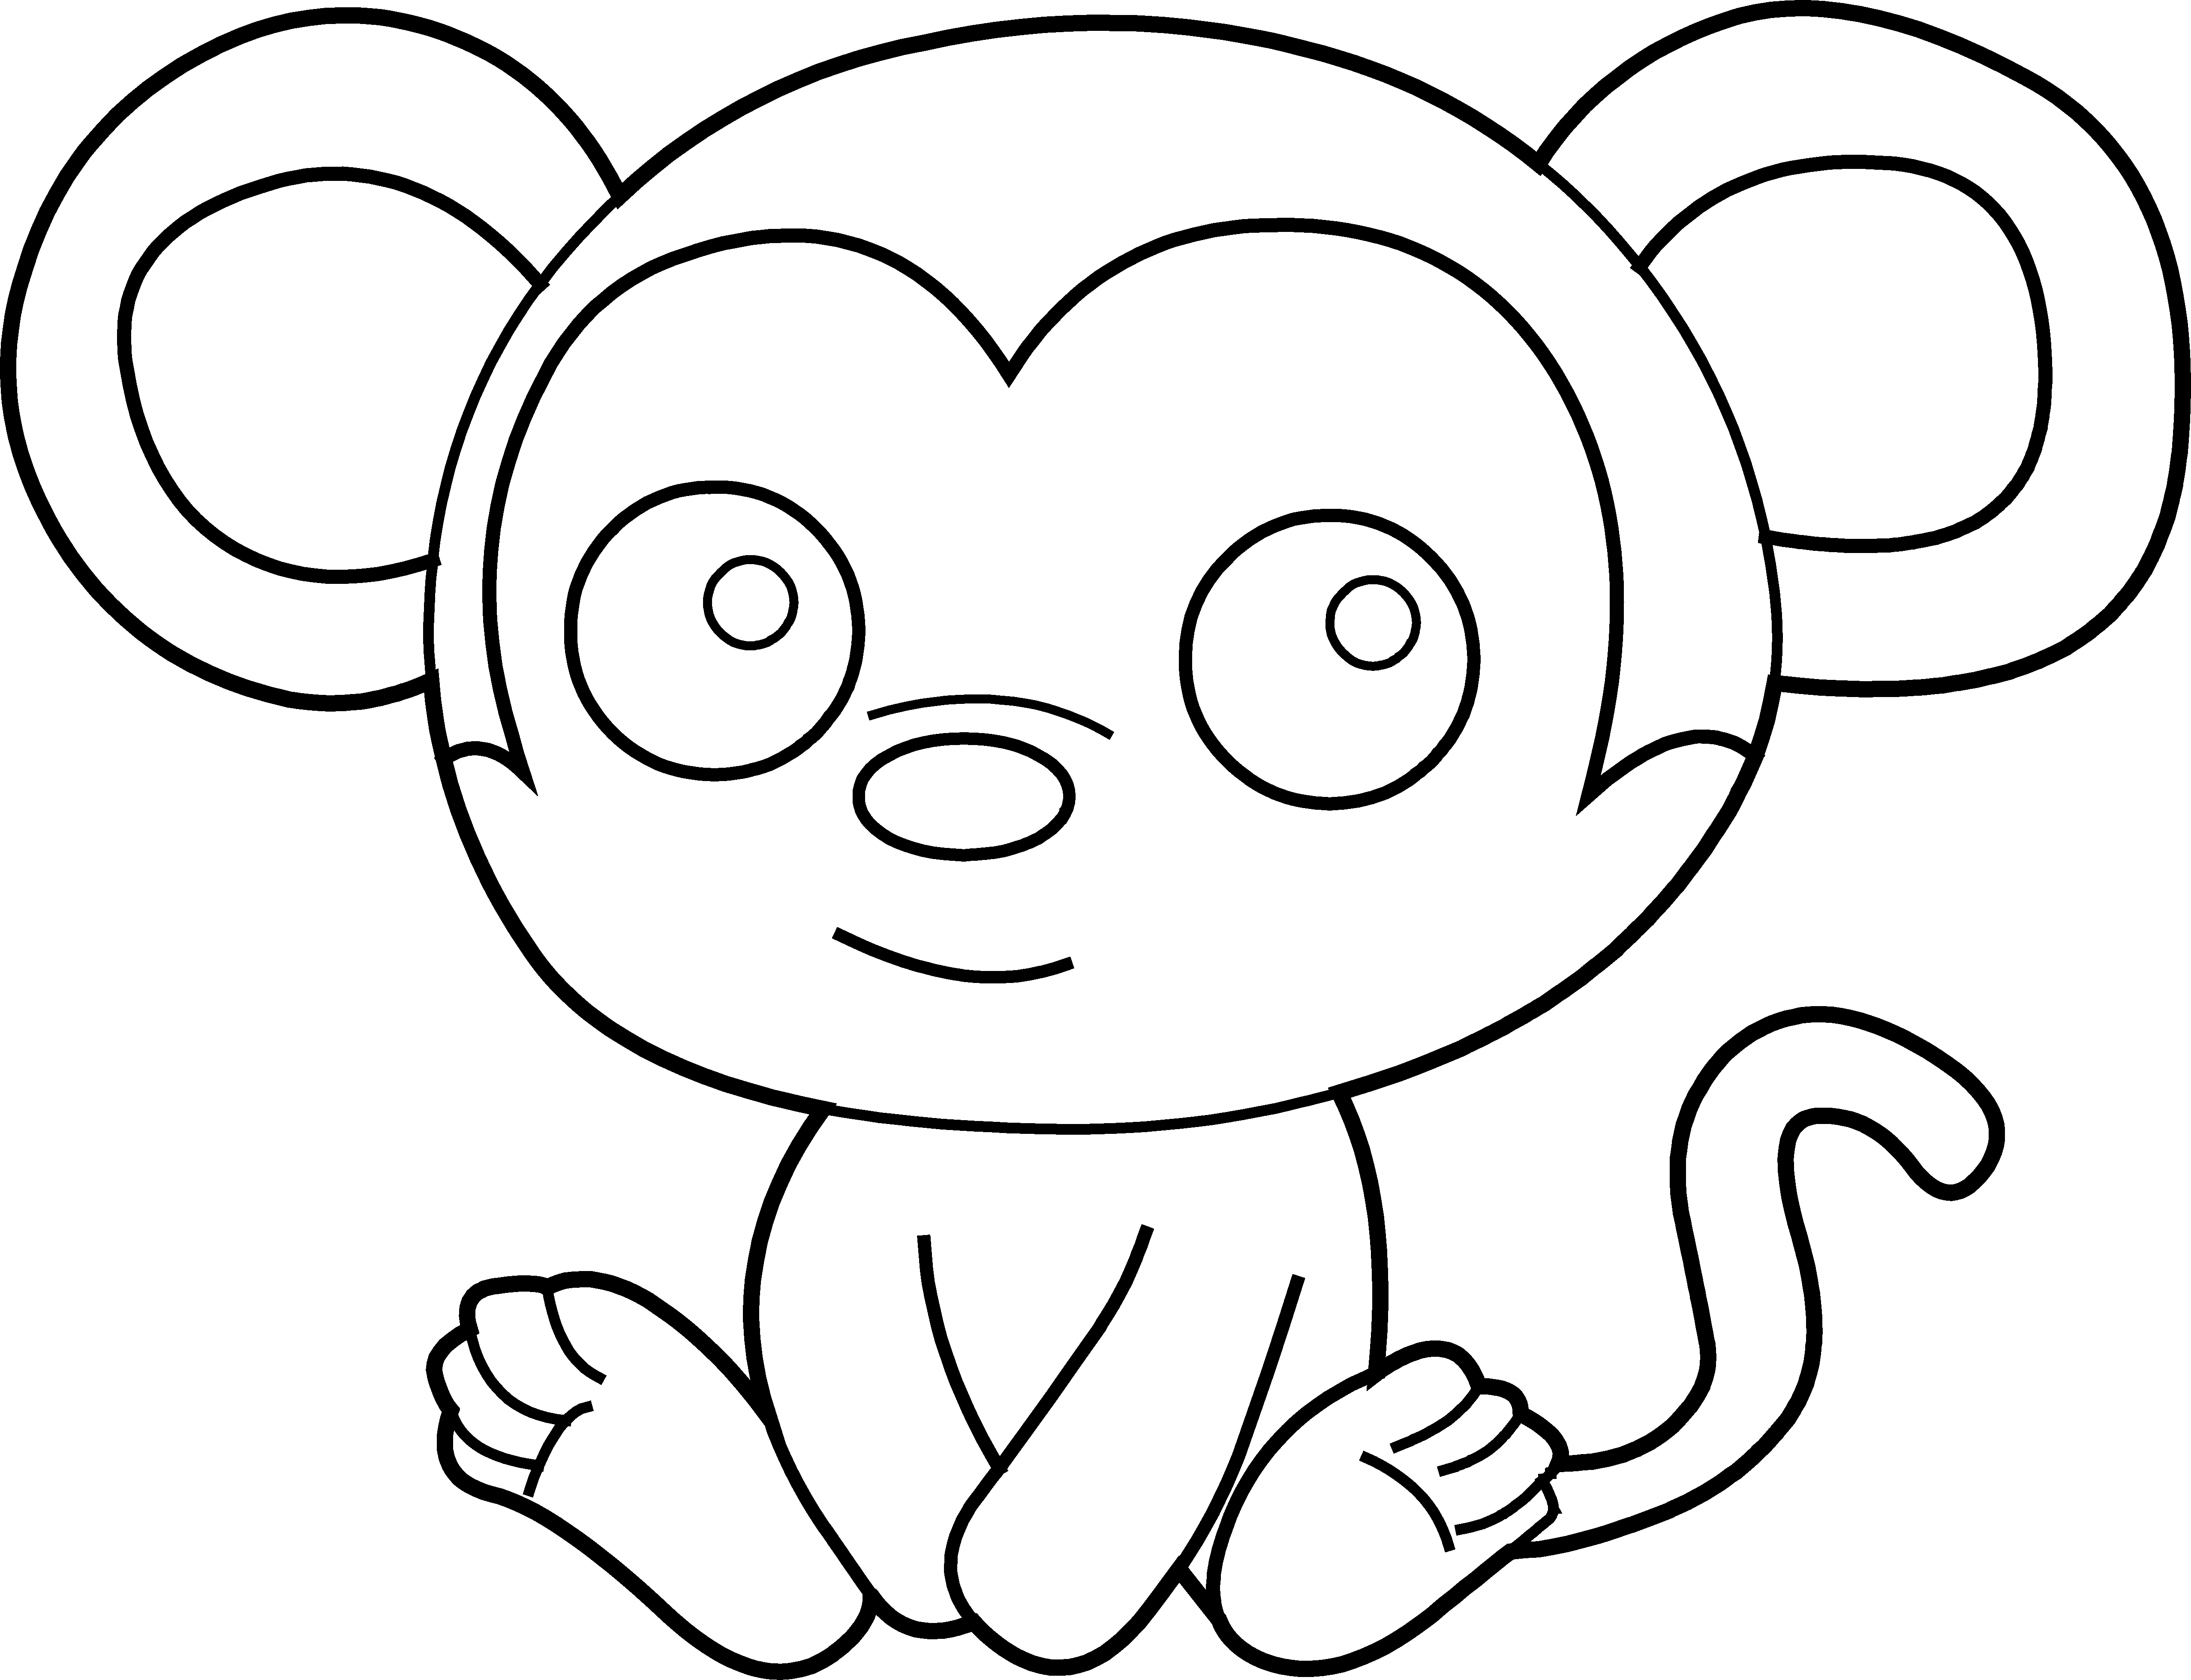 vector black and white Cute monkey clipart black and white. Crazywidow info